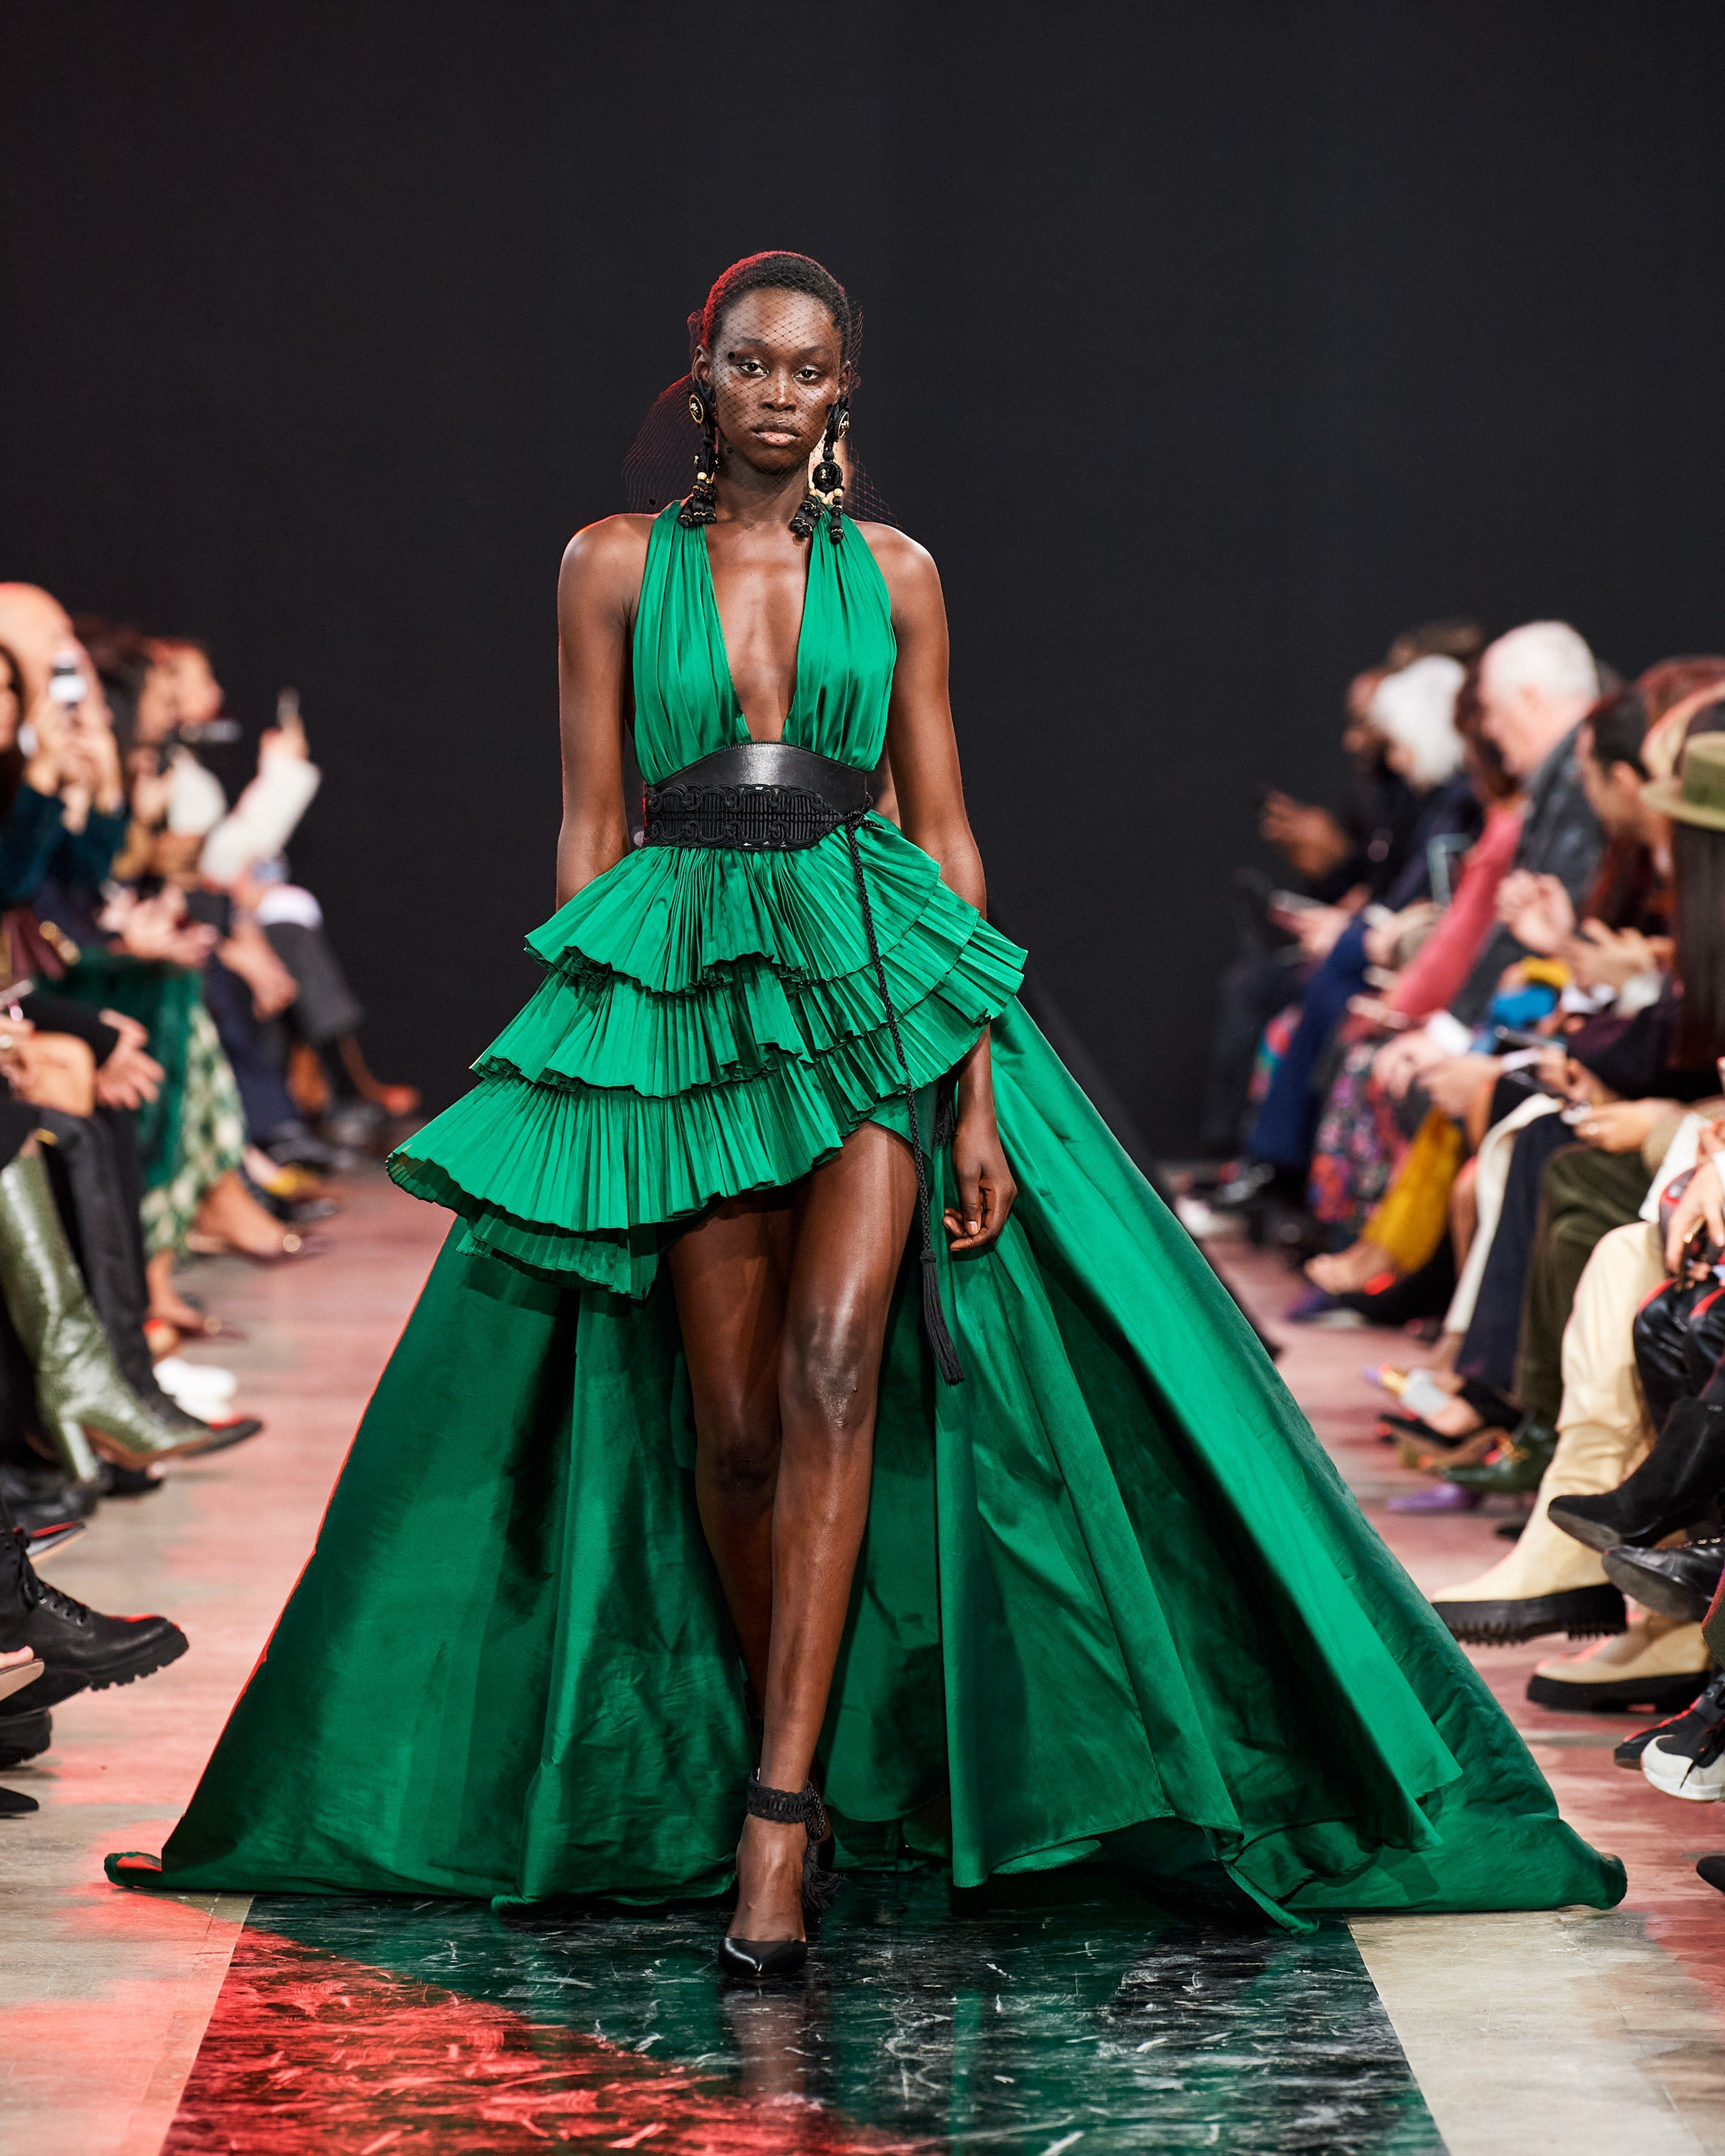 Paris Fashion Week Fw 2020 Elie Saab Front Pleat High Low Dress Clothia In 2020 Fashion Ready To Wear Fashion Show